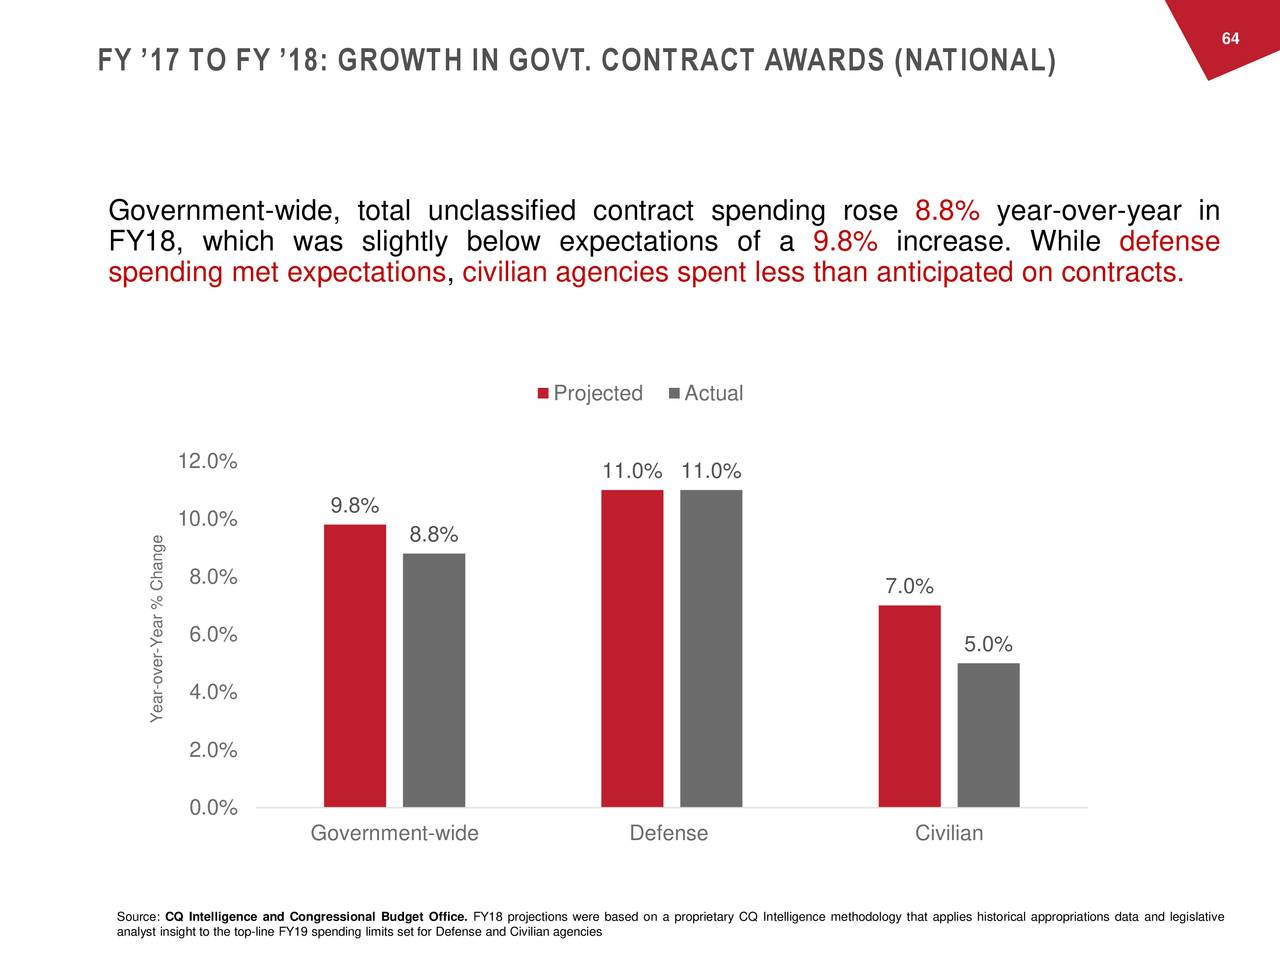 FY '17 TO FY '18: GROWTH IN GOVT. CONTRACT AWARDS (NATIONAL) Government-wide, total unclassified contract spending rose 8.8% year-over-year in FY18, which was slightly below expectations of a 9.8% increase. While defense spending met expectations, civilian agencies spent less than anticipated on contracts. Projected Actual 12.0% 11.0% 11.0% 10.0% 9.8% 8.8% 8.0% 7.0% Year % Change - 5.0% -ver 4.0% Year 2.0% 0.0% Government-wide Defense Civilian Source: CQ Intelligence and Congressional Budget Office. FY18 projections were based on a proprietary CQ Intelligence methodology that applies historical appropriations data and legislative analyst insight to the top-line FY19 spending limits set for Defense and Civilian agencies